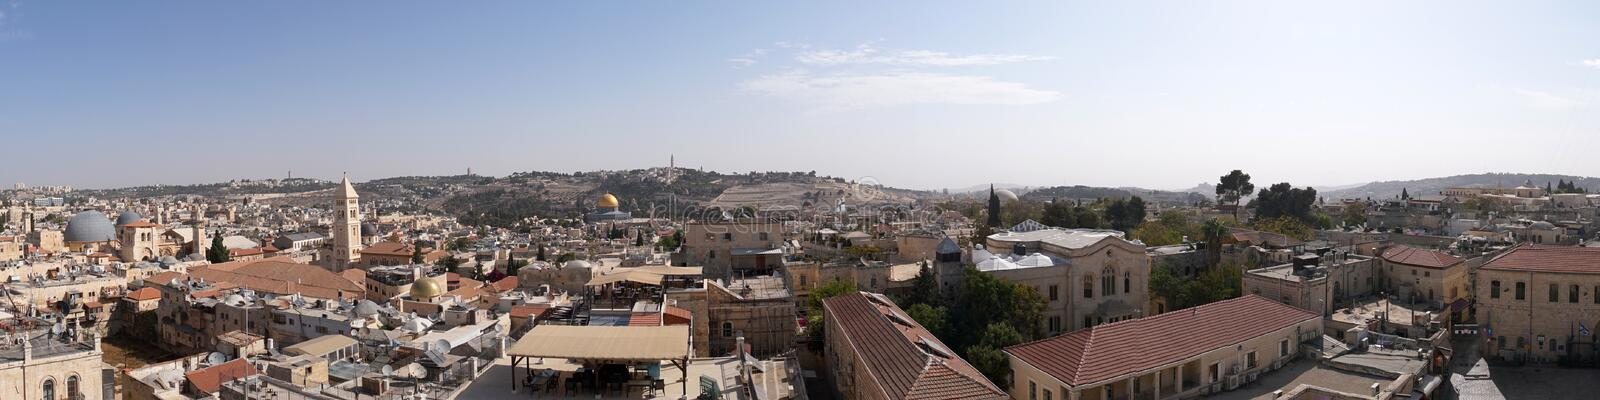 Panorama of old city Jerusalem, Israel from southern side. Top view of the roofs of the old historic district of royalty free stock photography